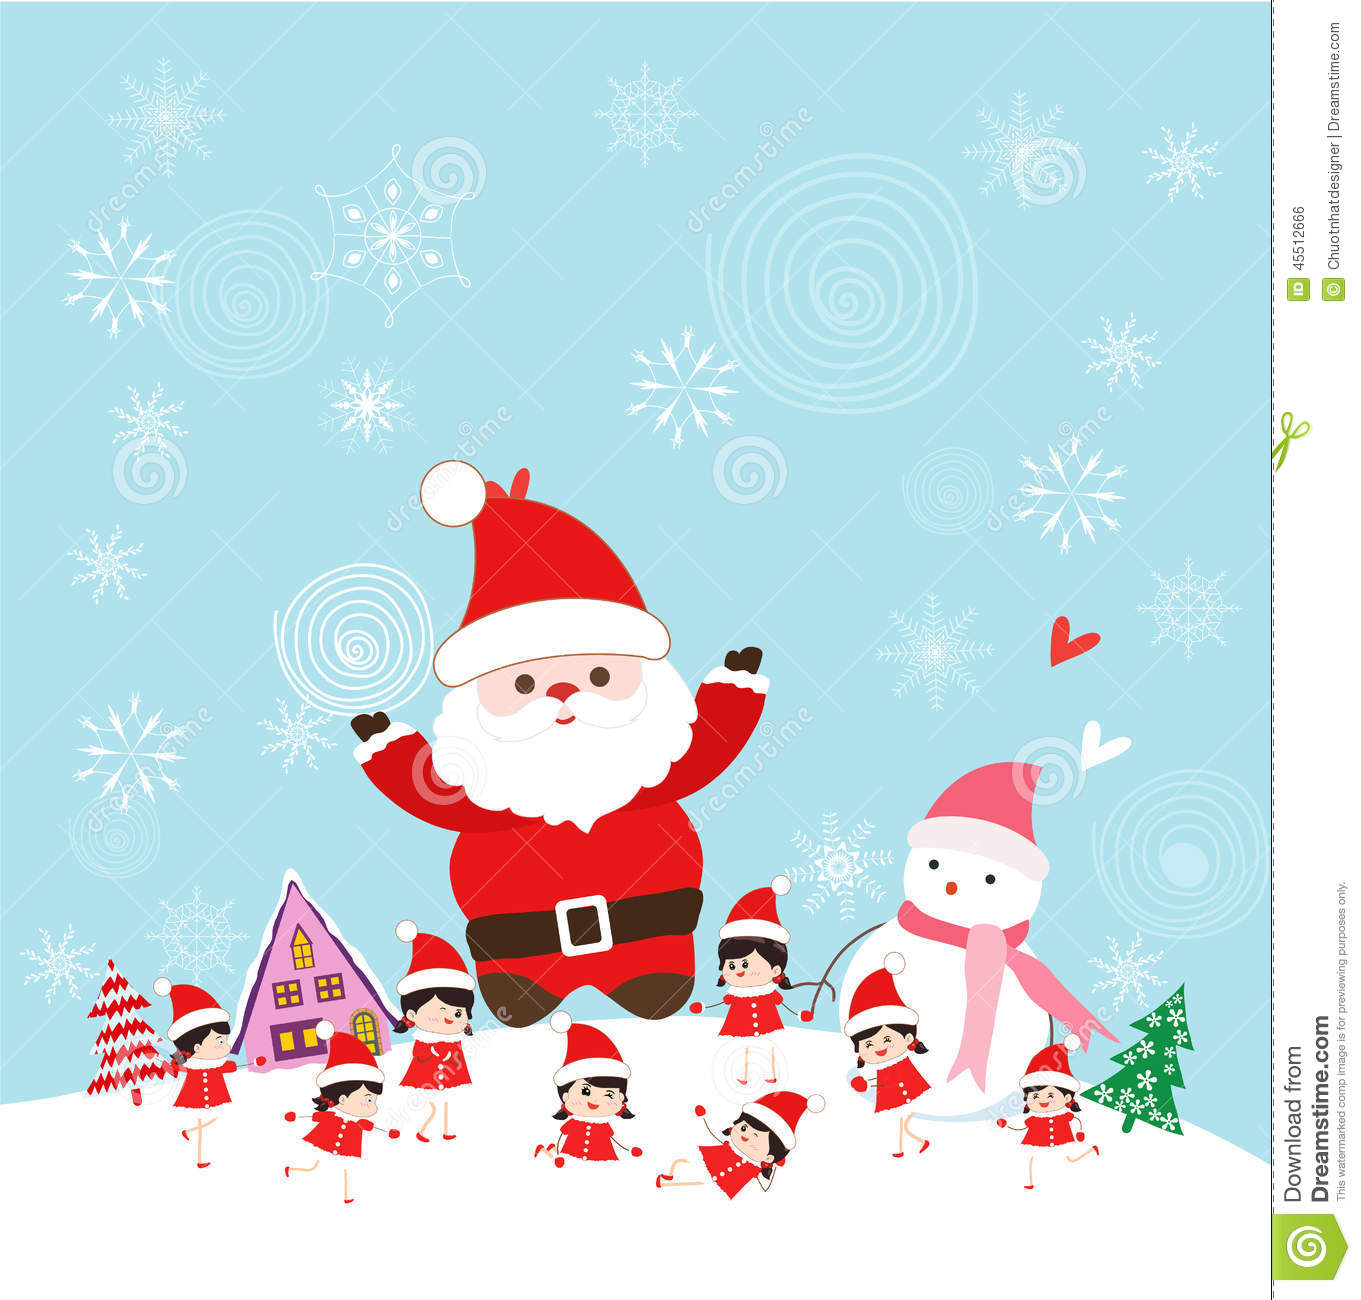 Christmas with santa claus and kids funny stock vector christmas with santa claus and kids funny m4hsunfo Images